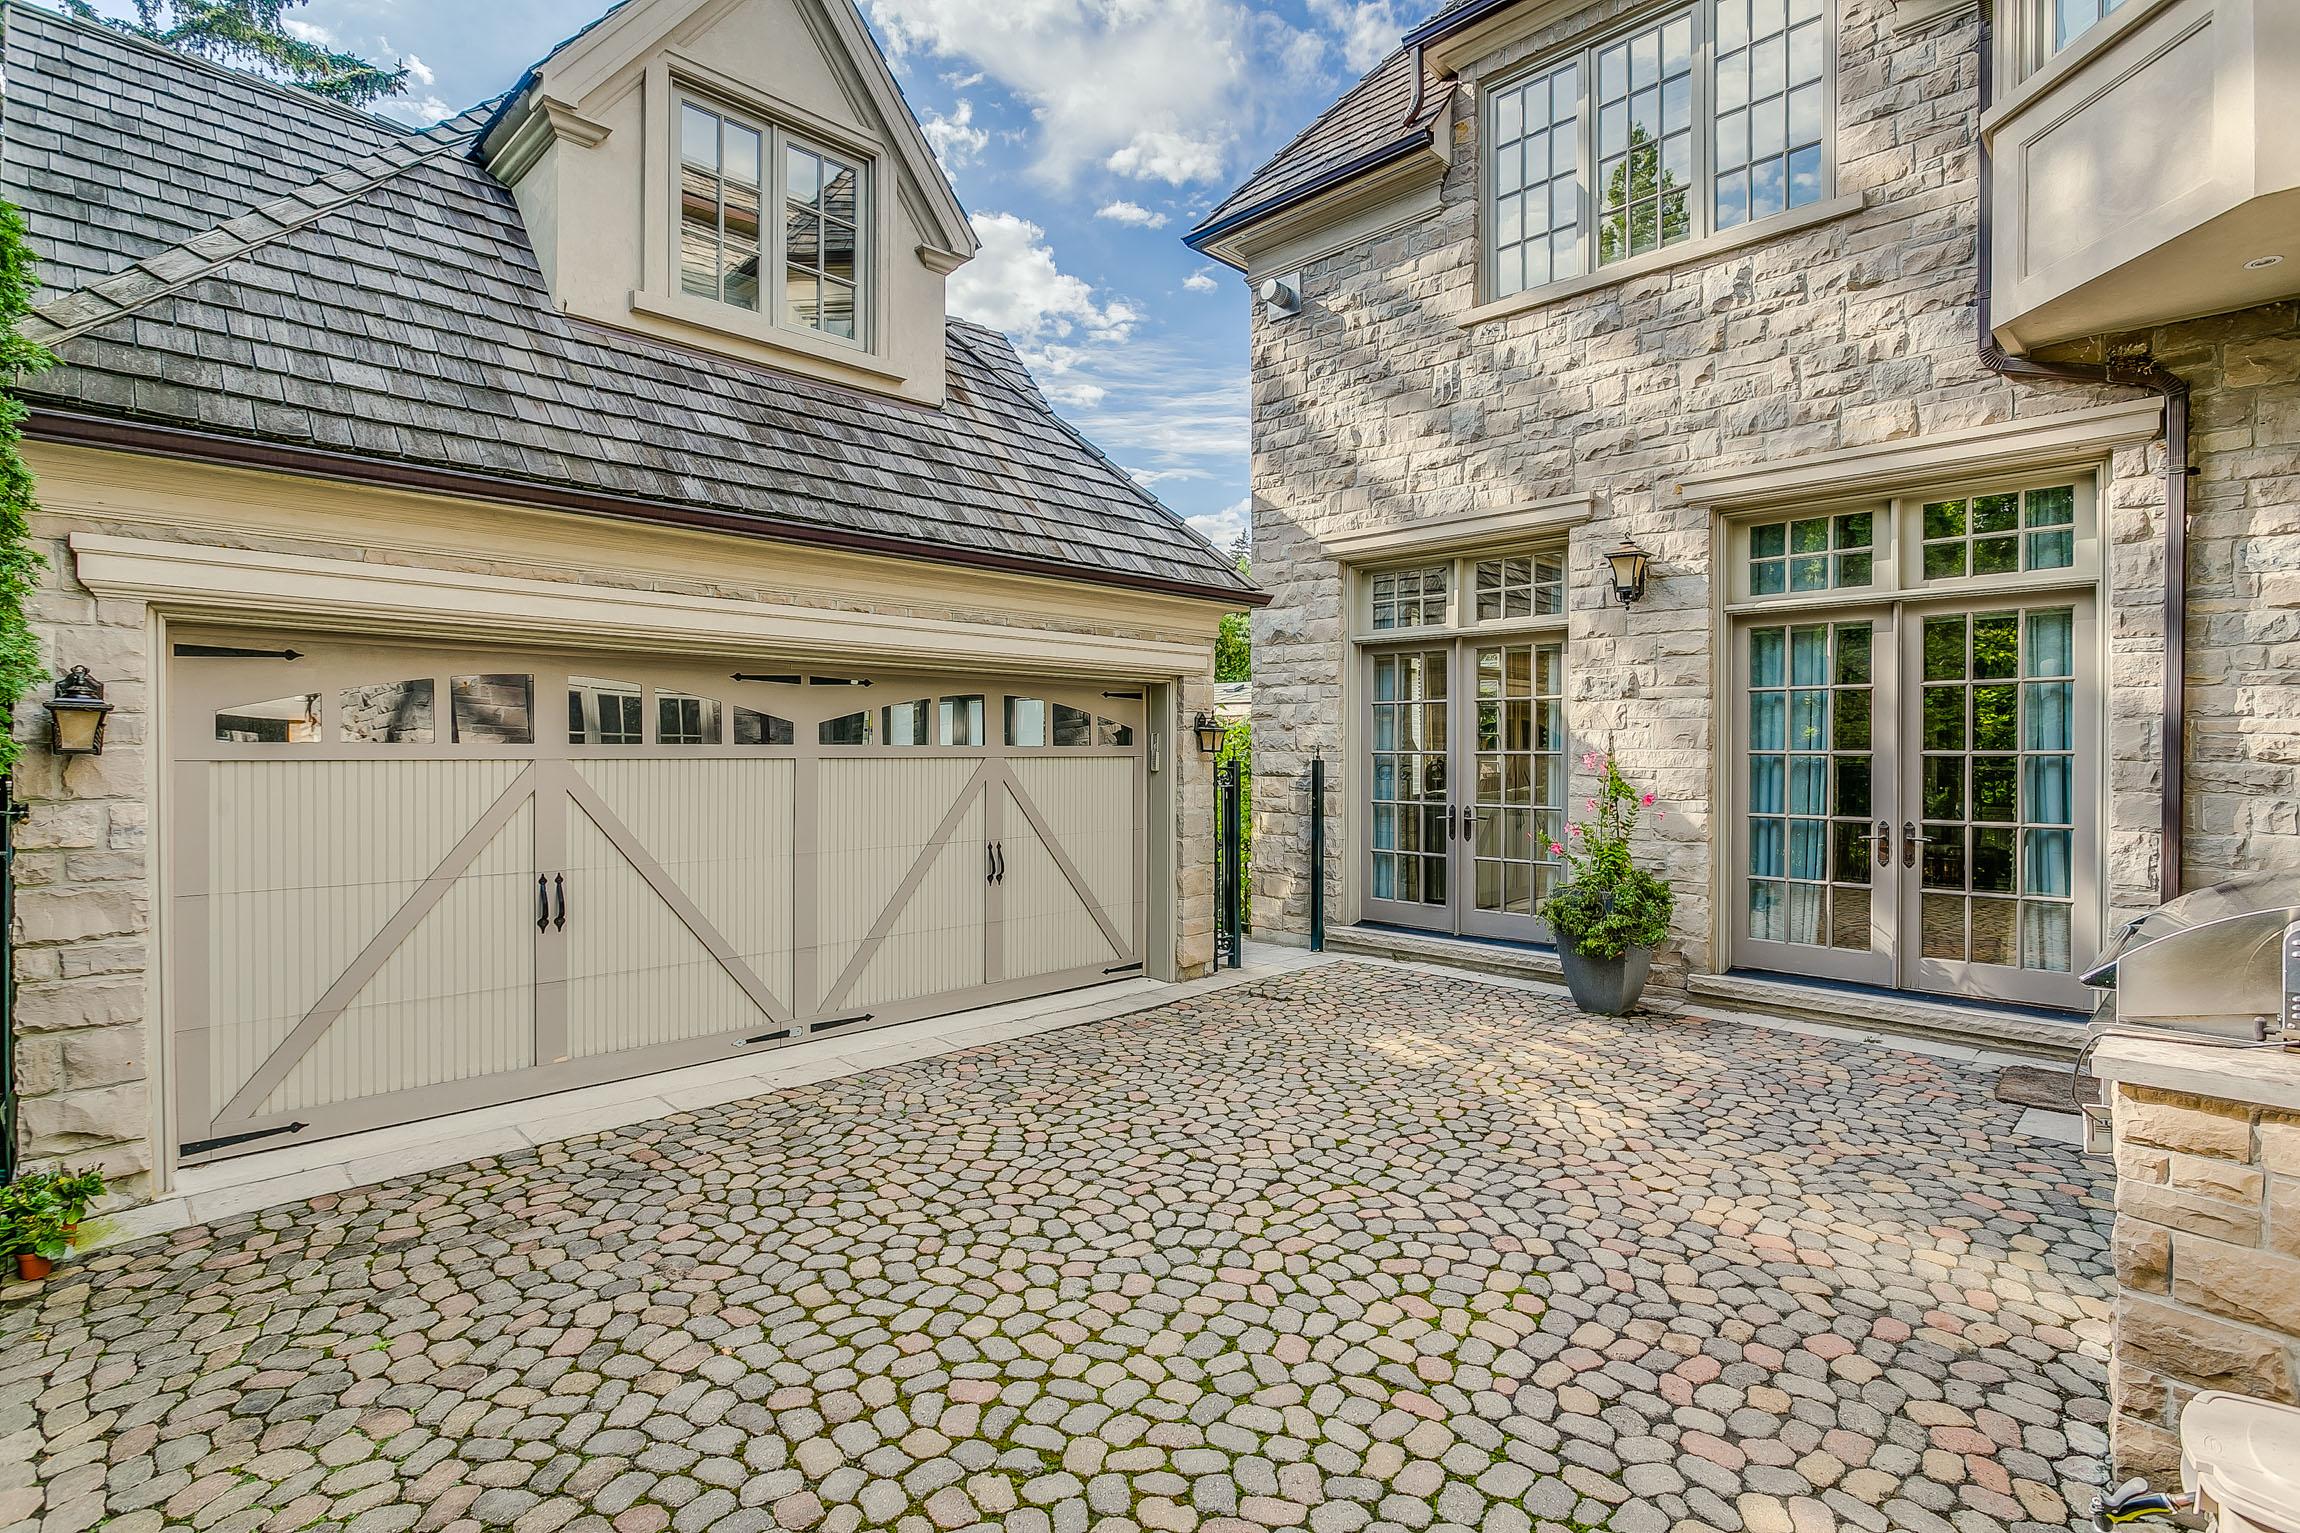 the garage - Nothing Has Been Overlooked In This Home Consisting Of Over 8000SF of Living Space, Including A Tunnel Connecting The Lower Level To The Coach House, Atop The Custom Designed Garage.